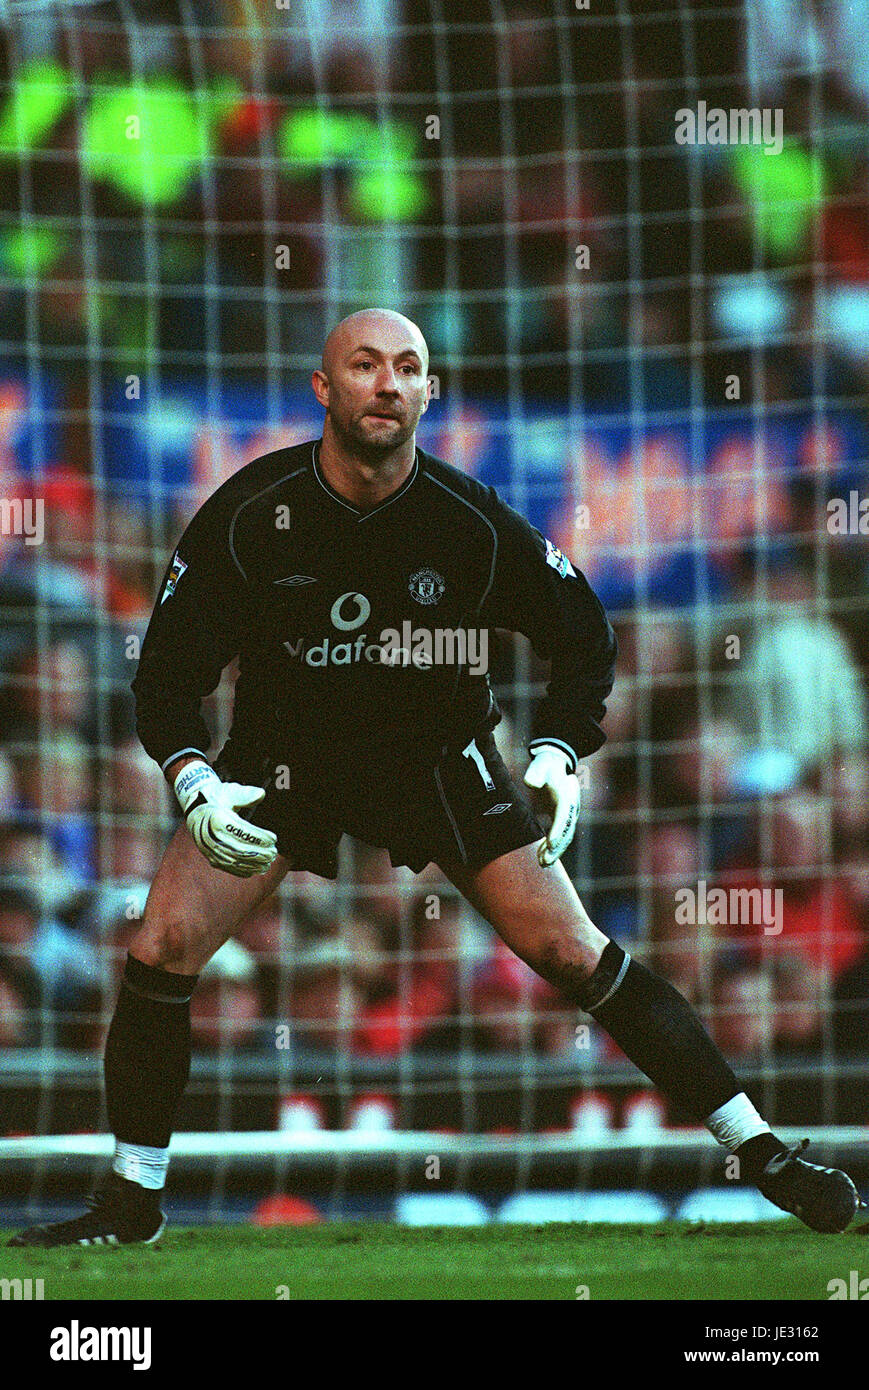 c6a1f0c2360 FABIEN BARTHEZ MANCHESTER UNITED FC OLD TRAFFORD MANCHESTER 19 Janvier 2002  Photo Stock